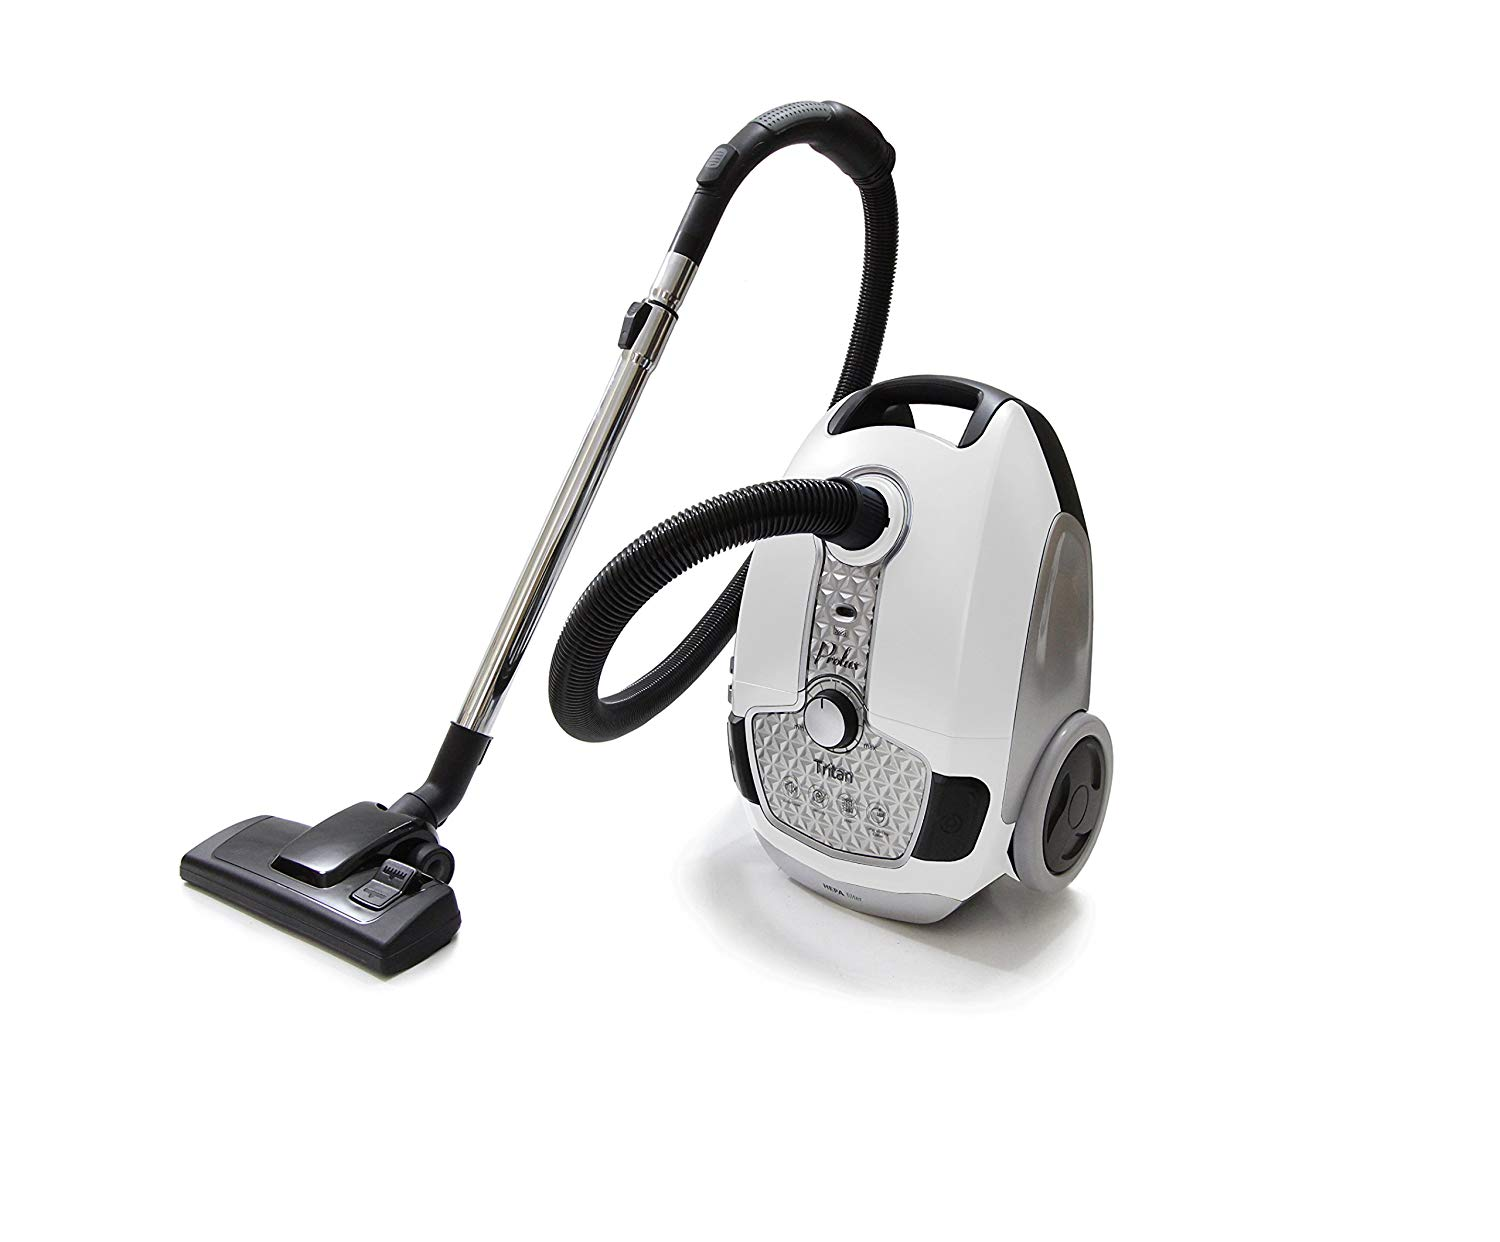 Top 5 Best Canister Vacuum For Pet Hair 2019 Buying Guide